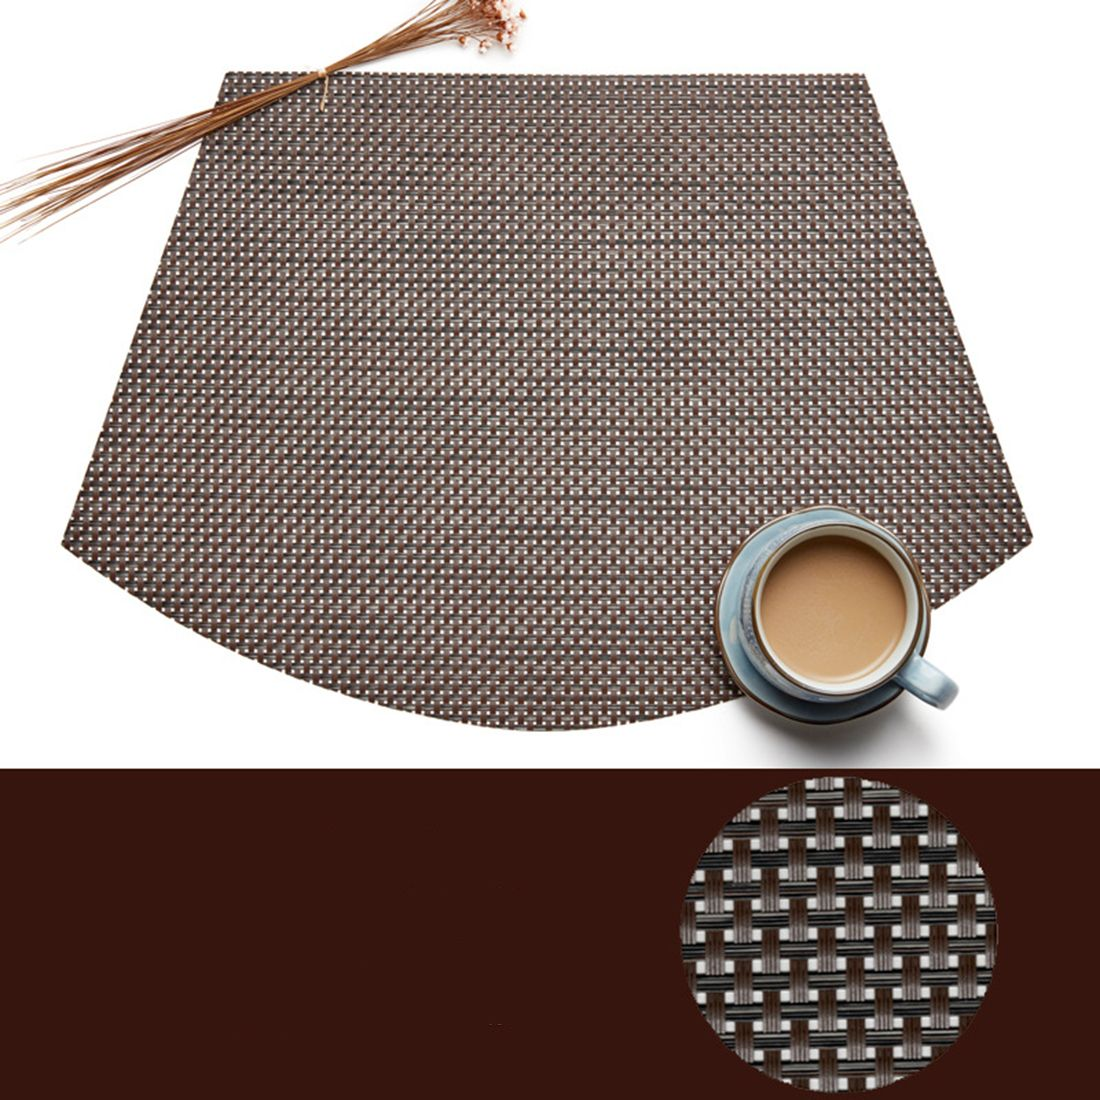 Pvc Wedge Placemats For Round Table Set Of 6 Coffee Placemats For Round Table Dinning Table Set Placemats Patterns